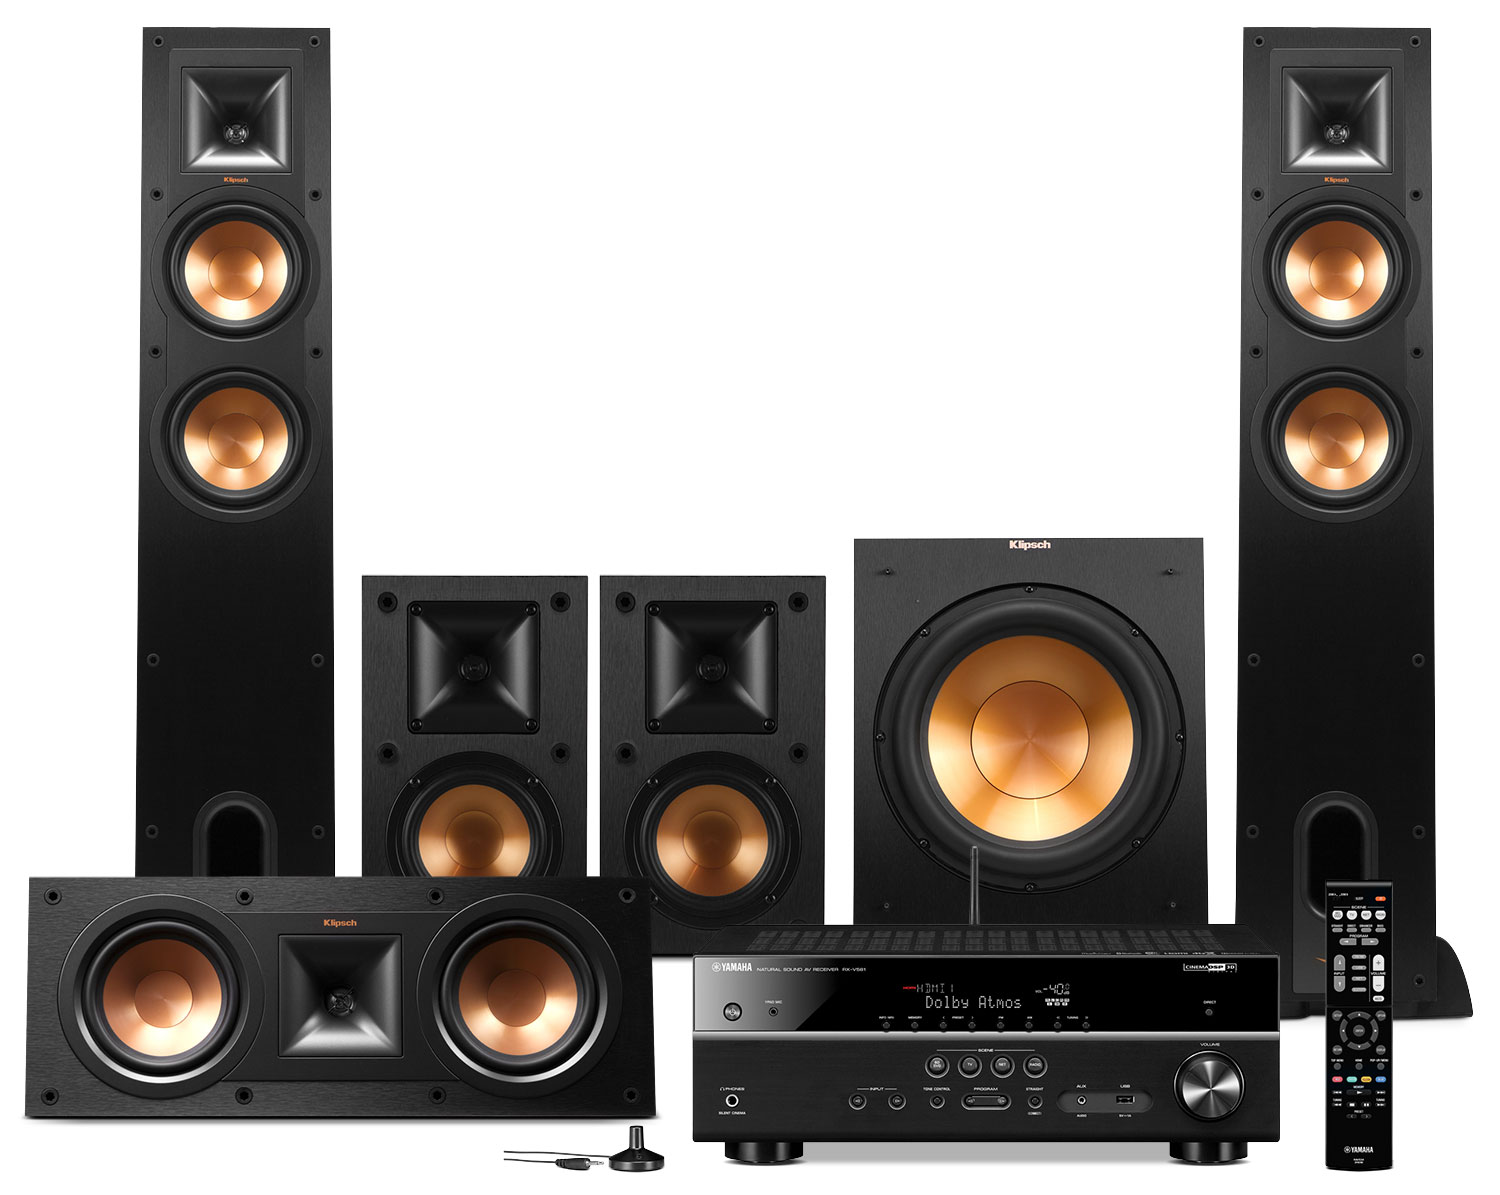 Yamaha RX-V581 Home Theatre Package with Klipsch Speakers